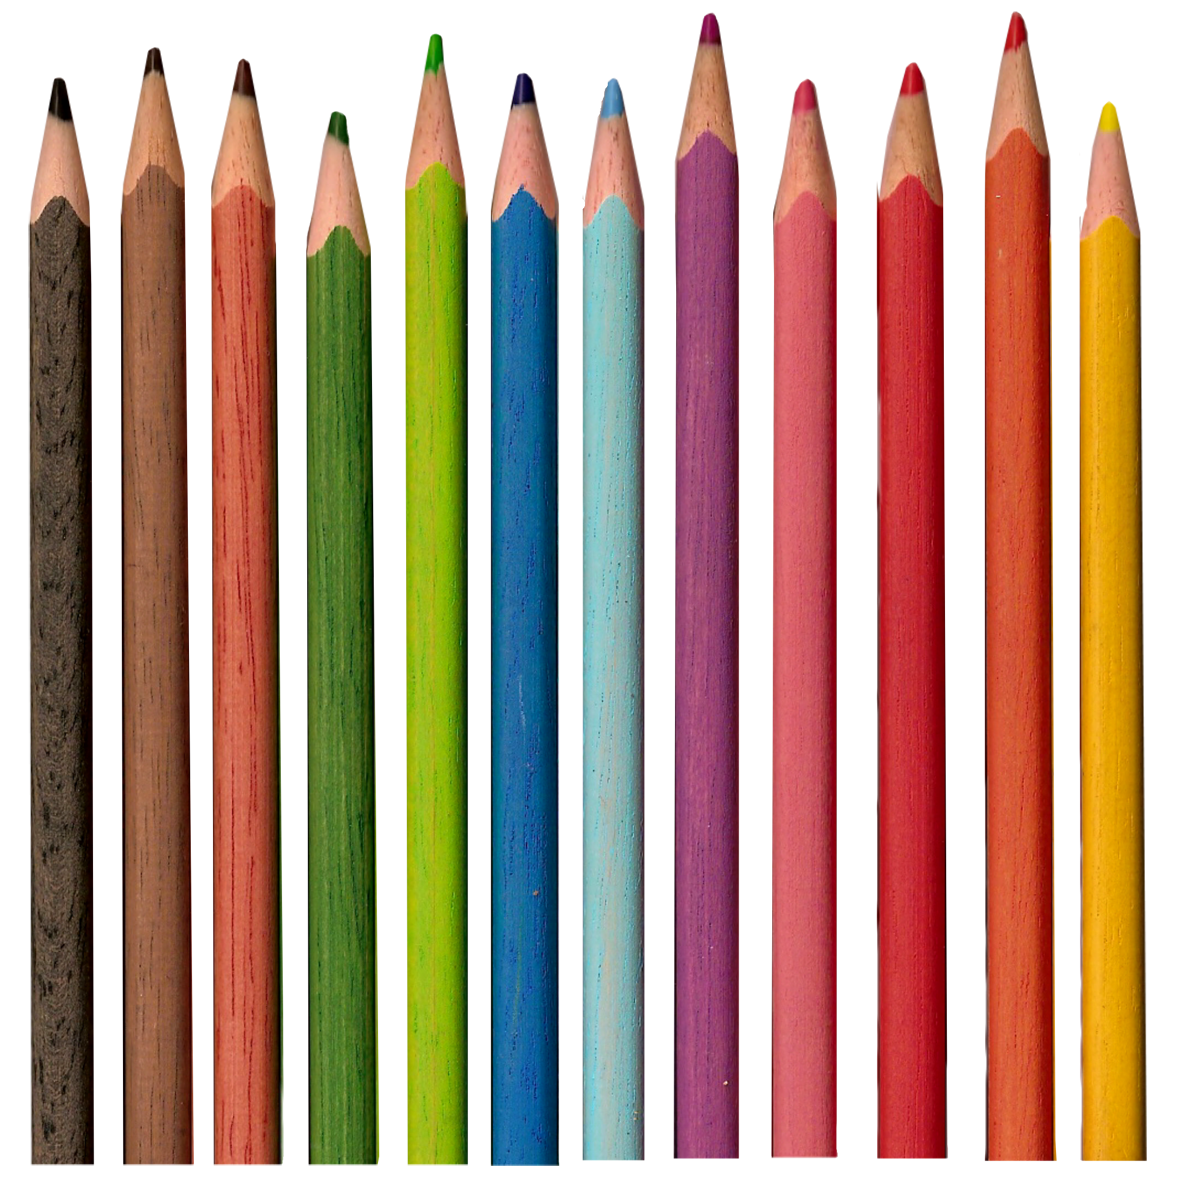 Pencil High Quality Png Web Icons Png